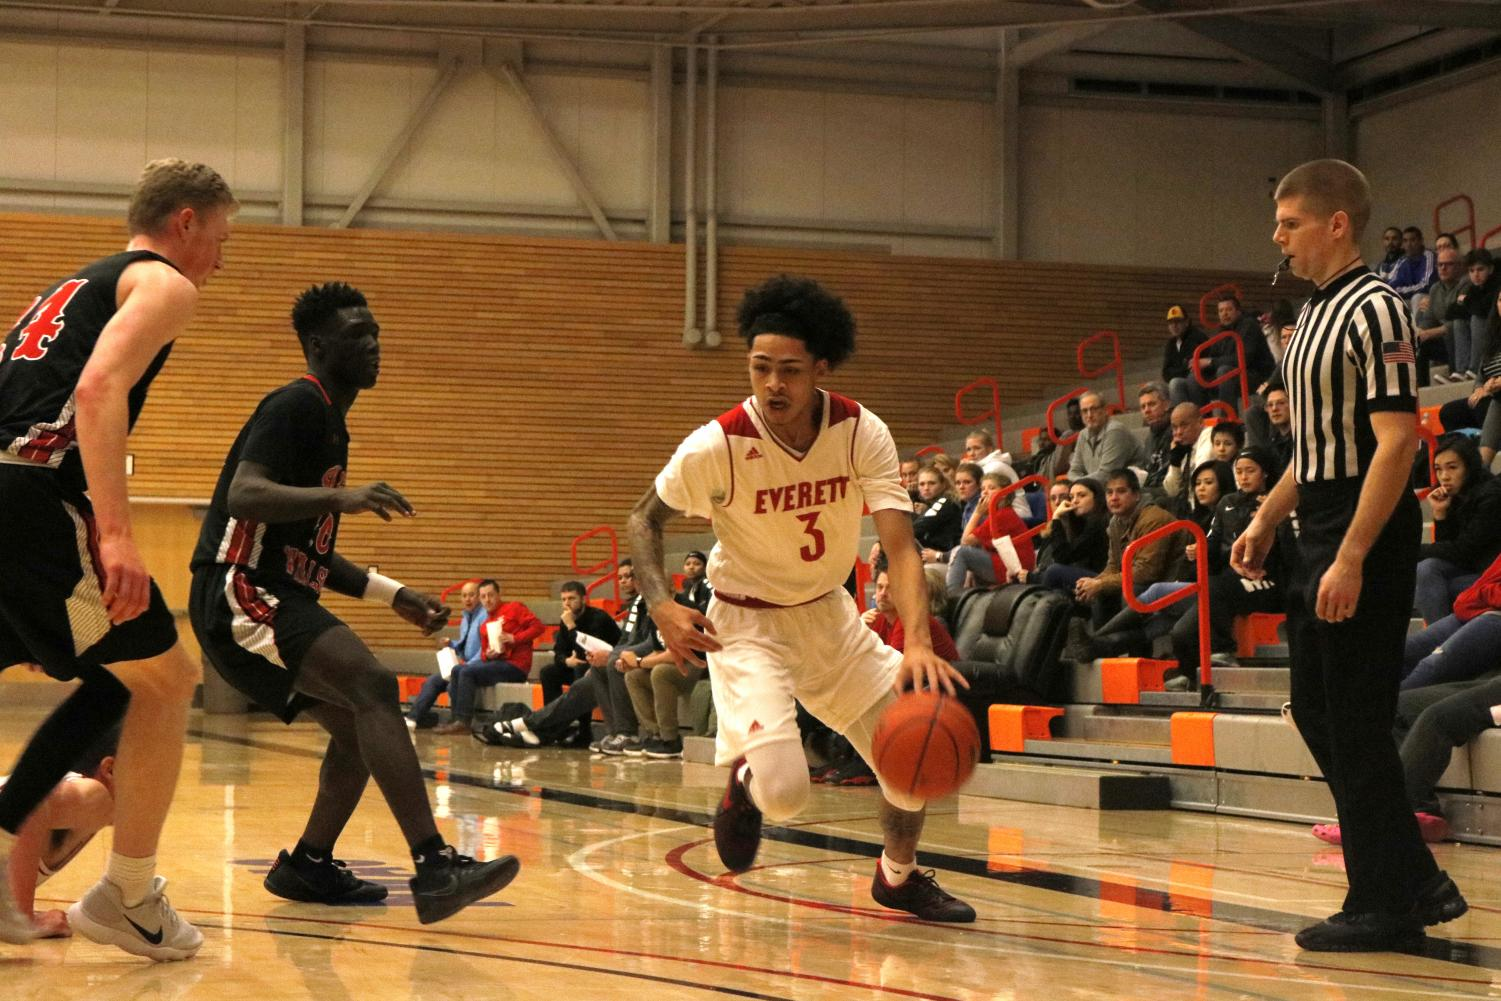 Markieth Brown Jr. drives to the rim in Everett's win over Skagit.